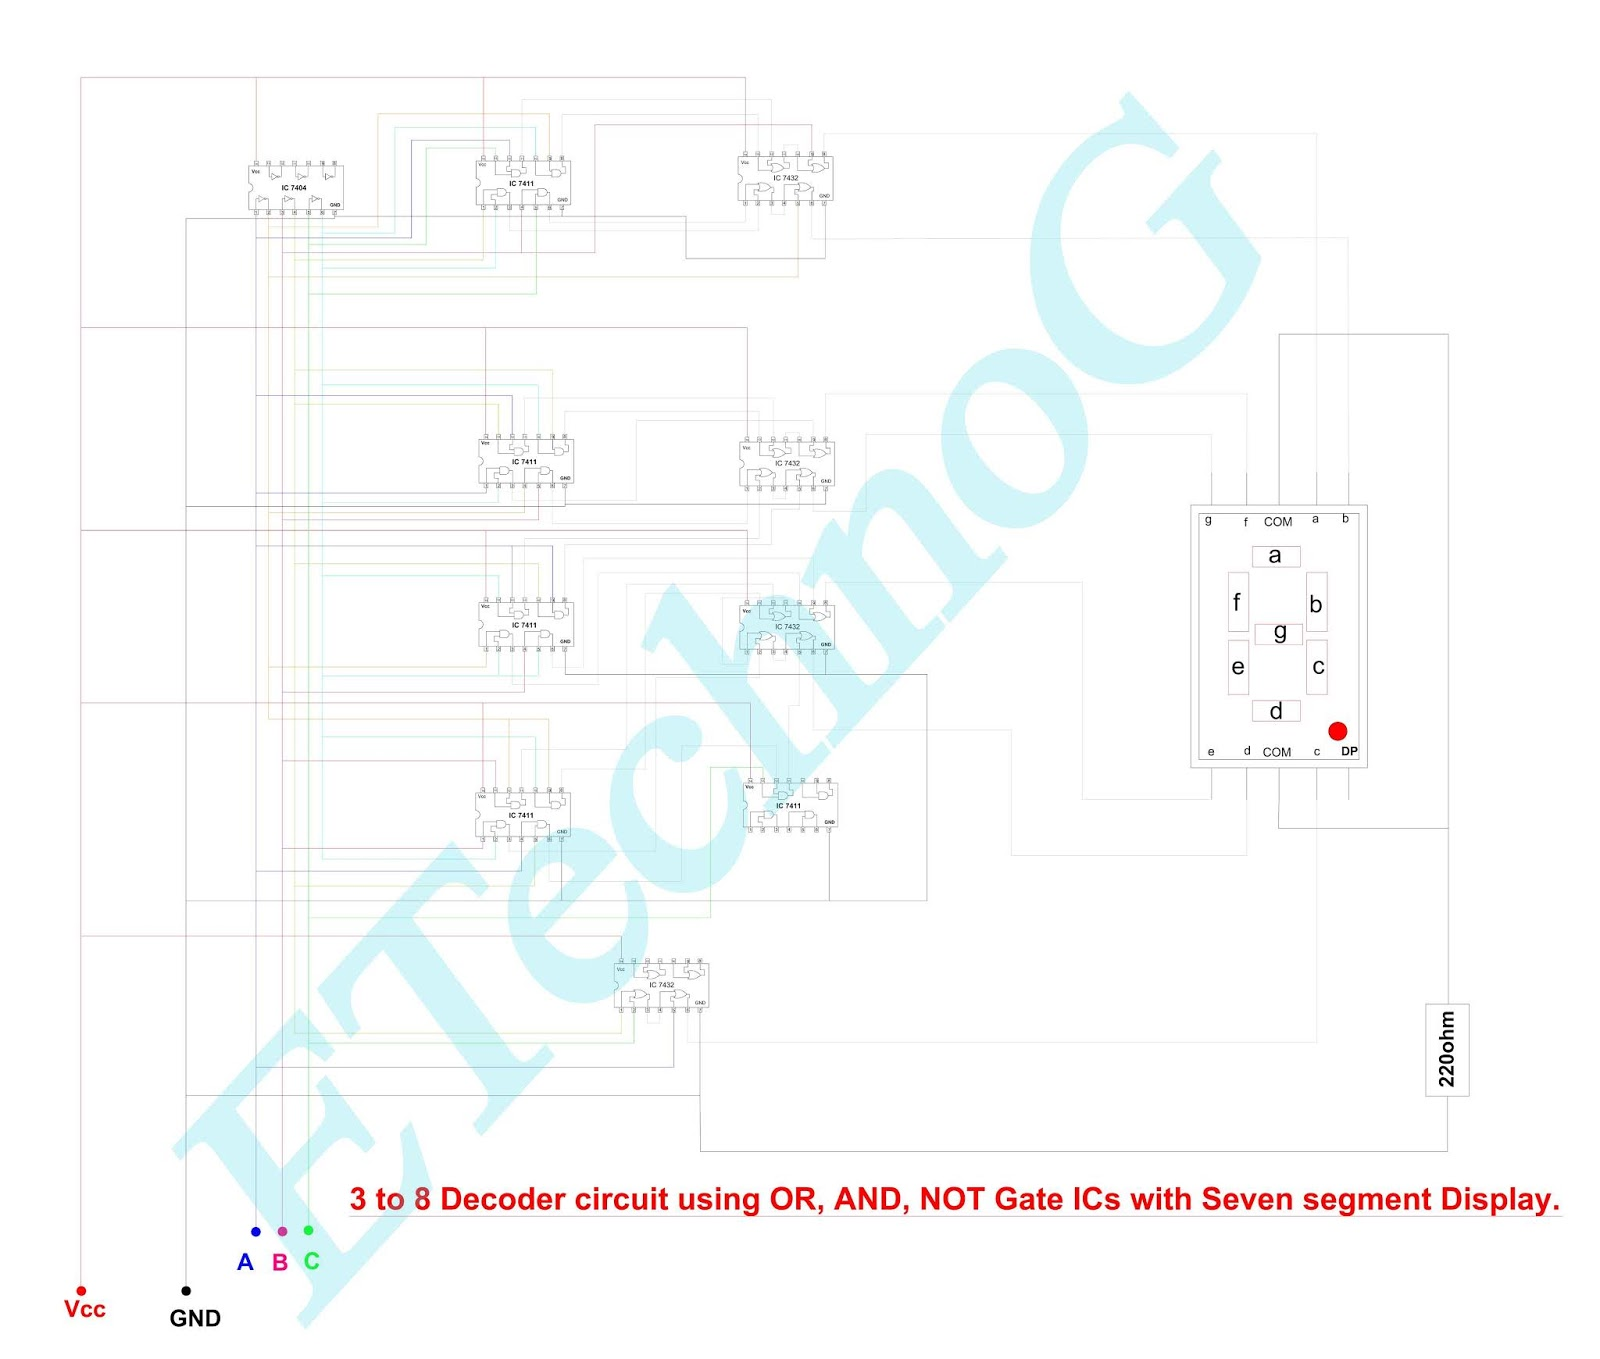 small resolution of 3 to 8 decoder circuit diagram 3 to 8 decoder truth table circuit design